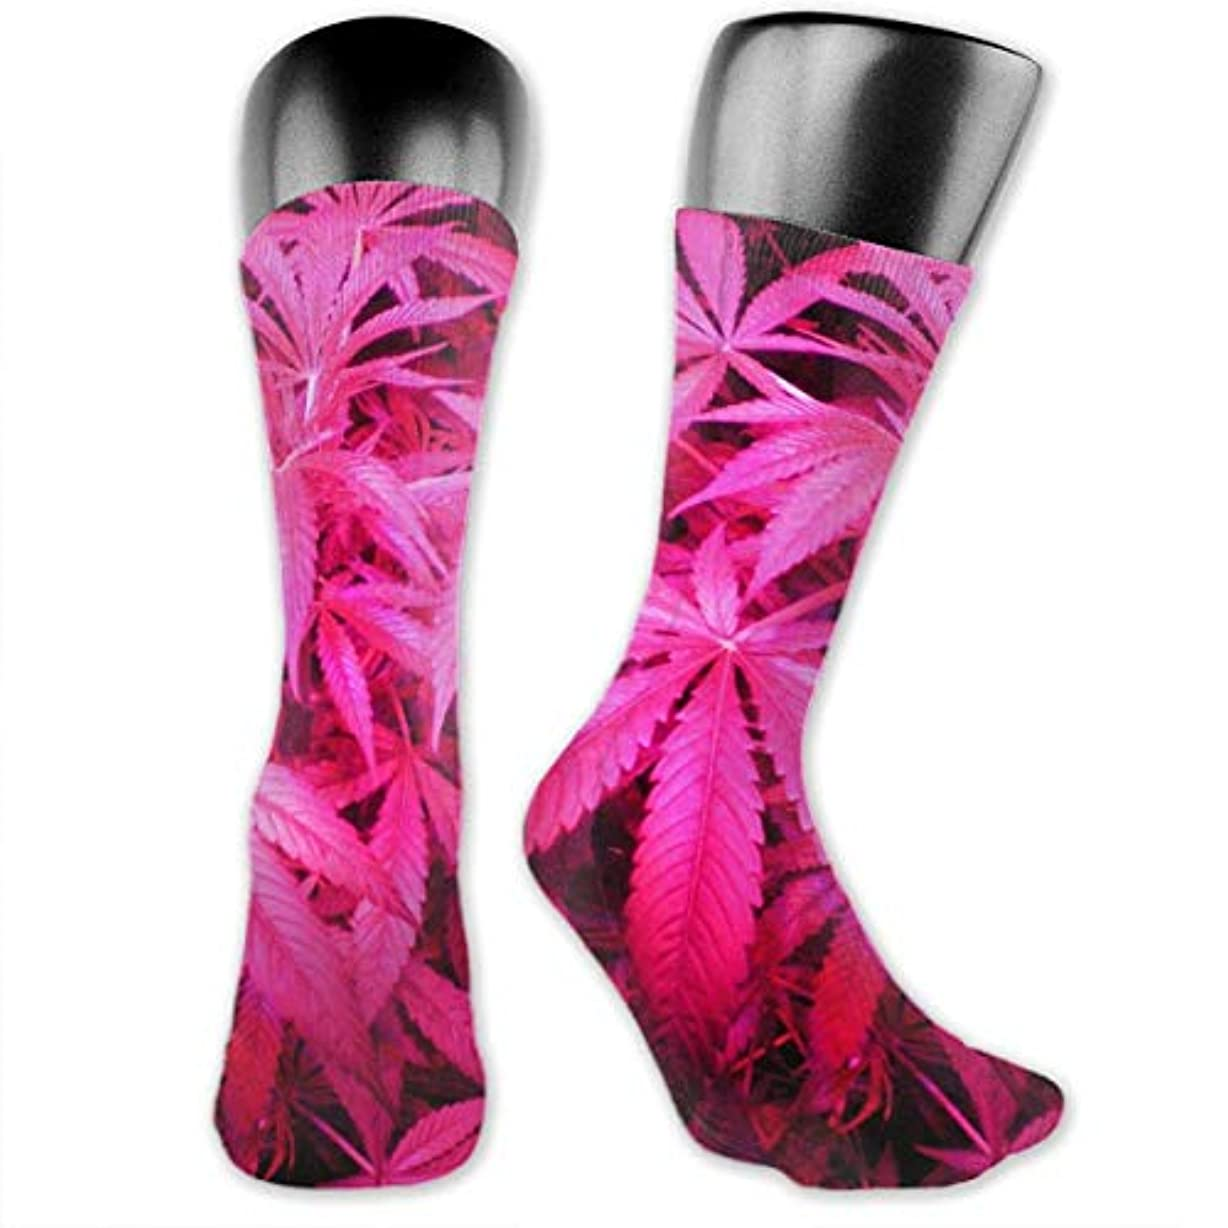 スペインヒントプレートMKLOS 通気性 圧縮ソックス Breathable Thigh High Socks Over Exotic Psychedelic Print Compression High Tube Thigh Boot Stockings...